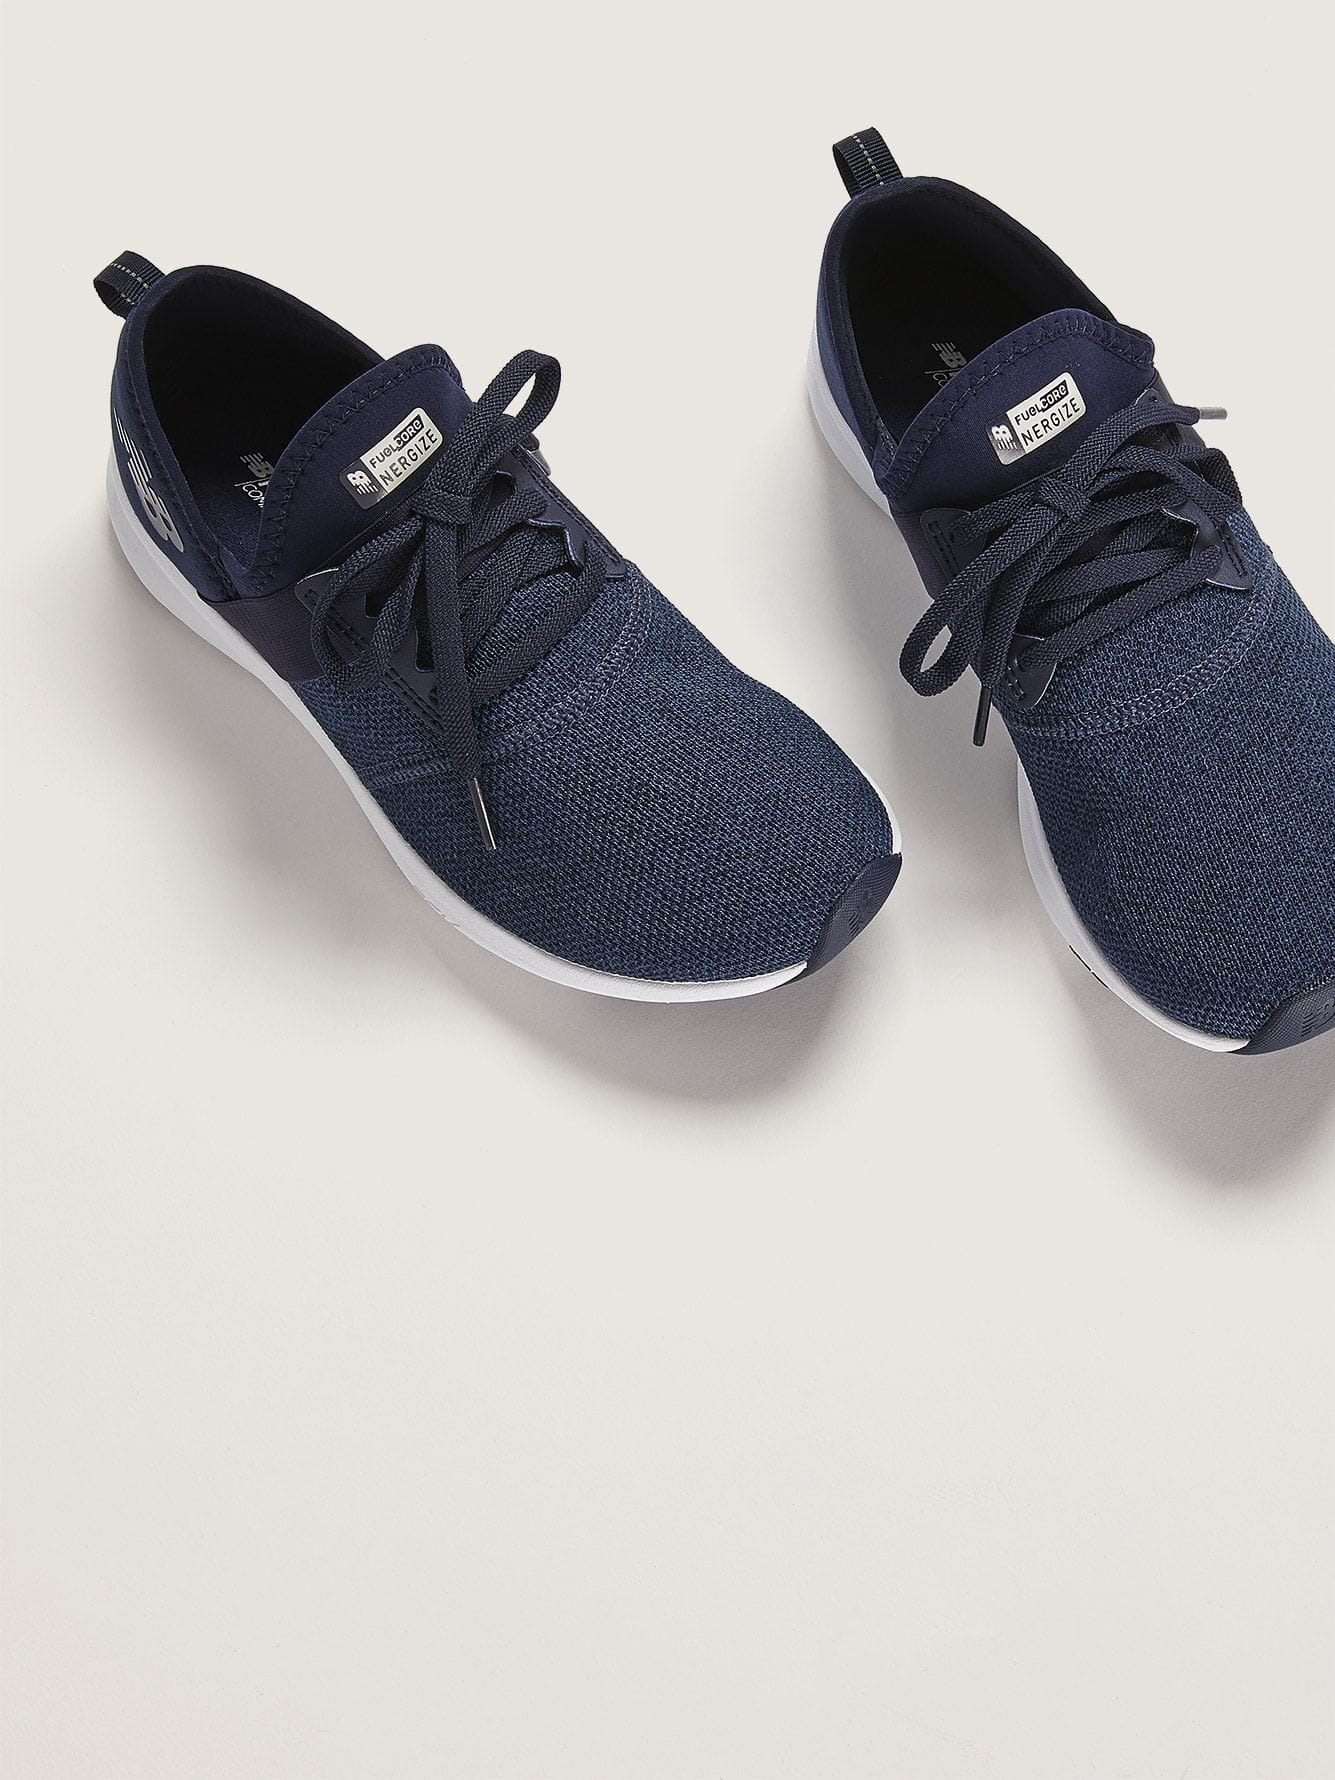 Wide Fuelcore Nergize Slip-On Sneakers - New Balance